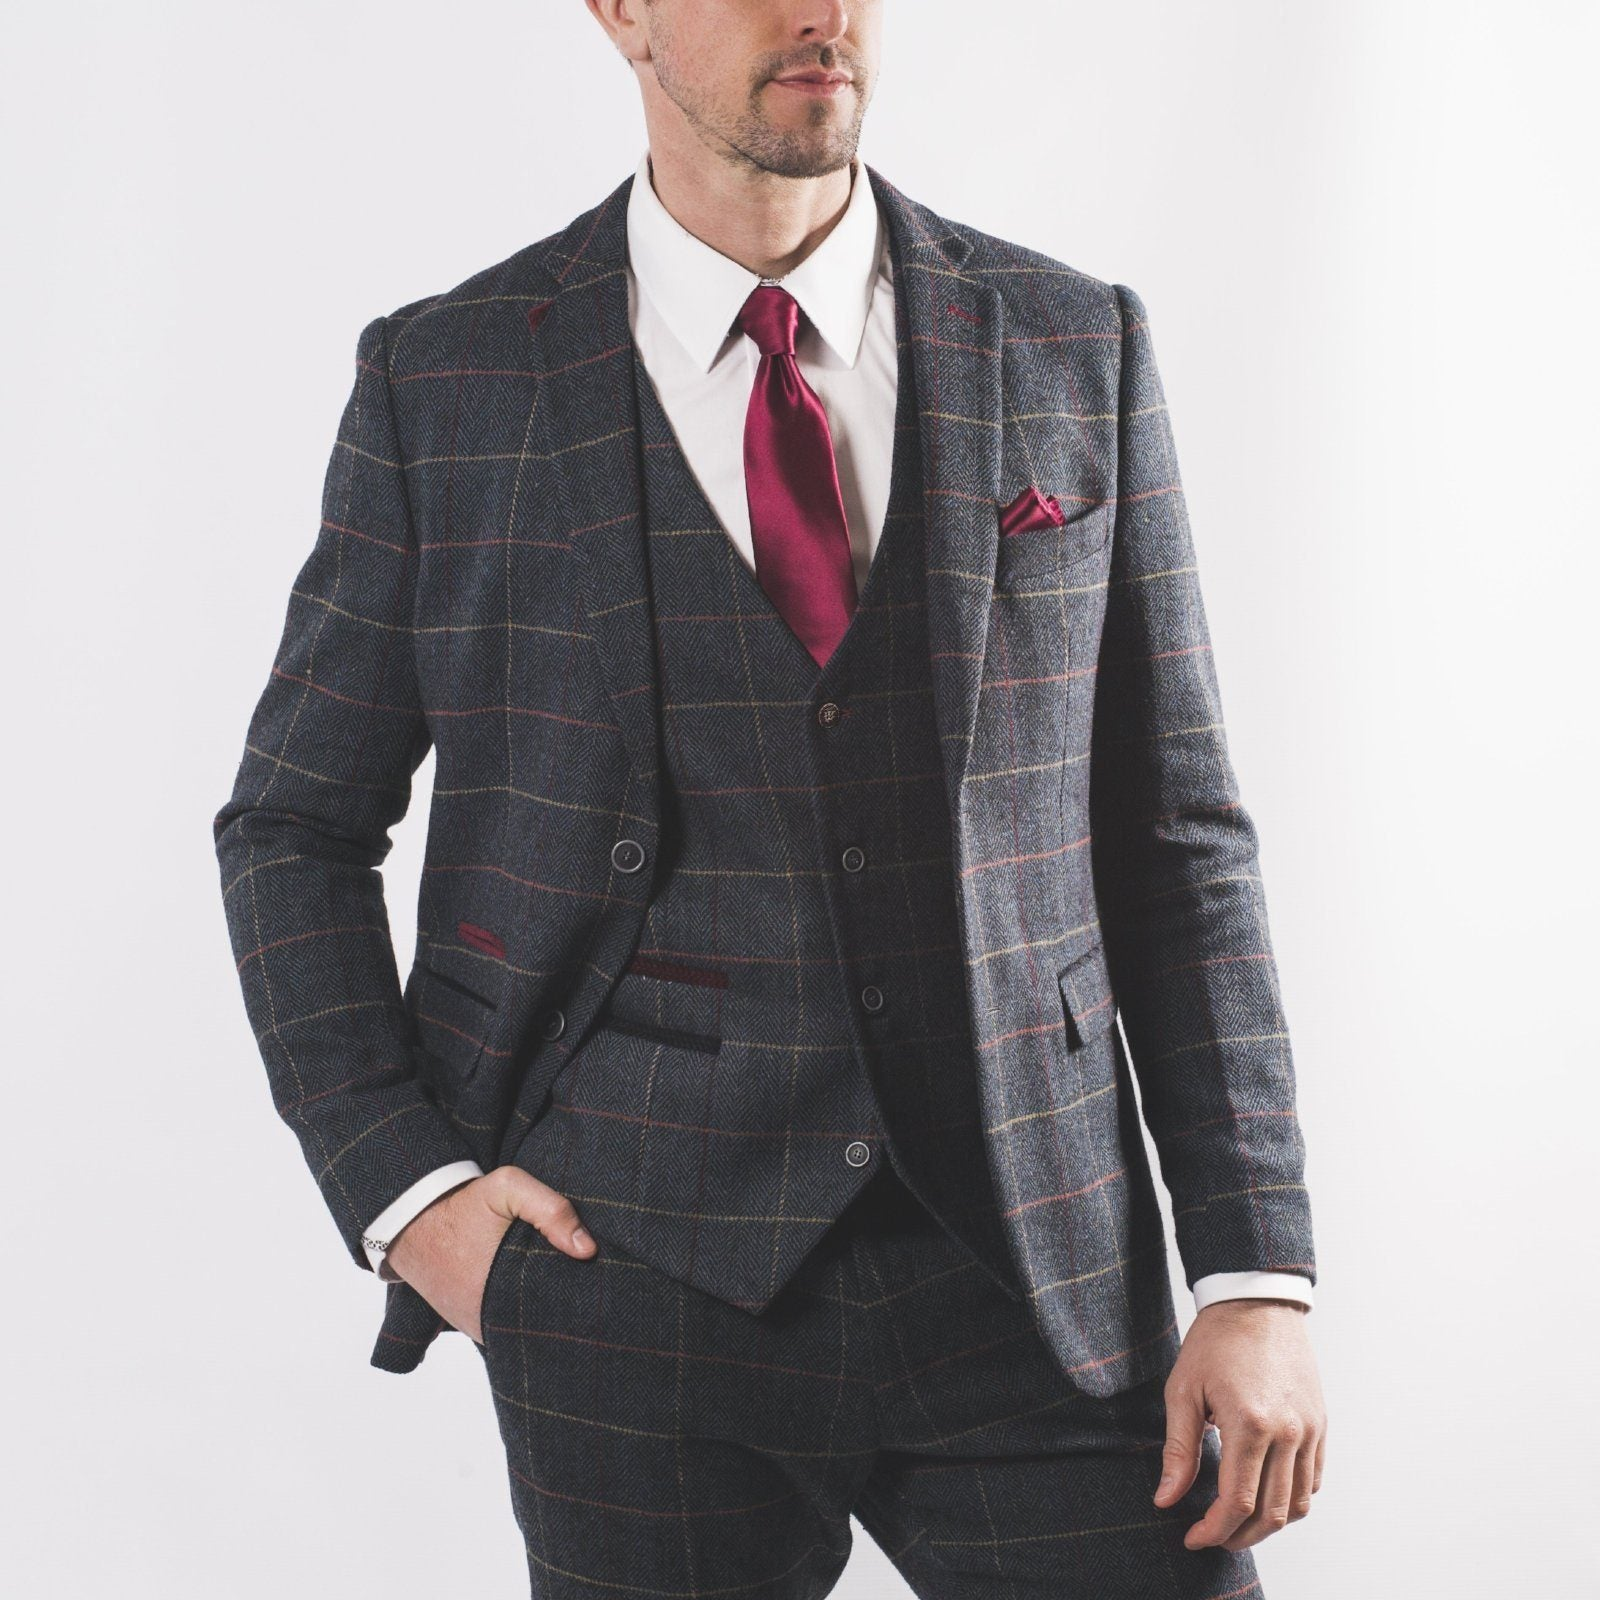 Harold Blue Tweed Suit - Leonard Silver